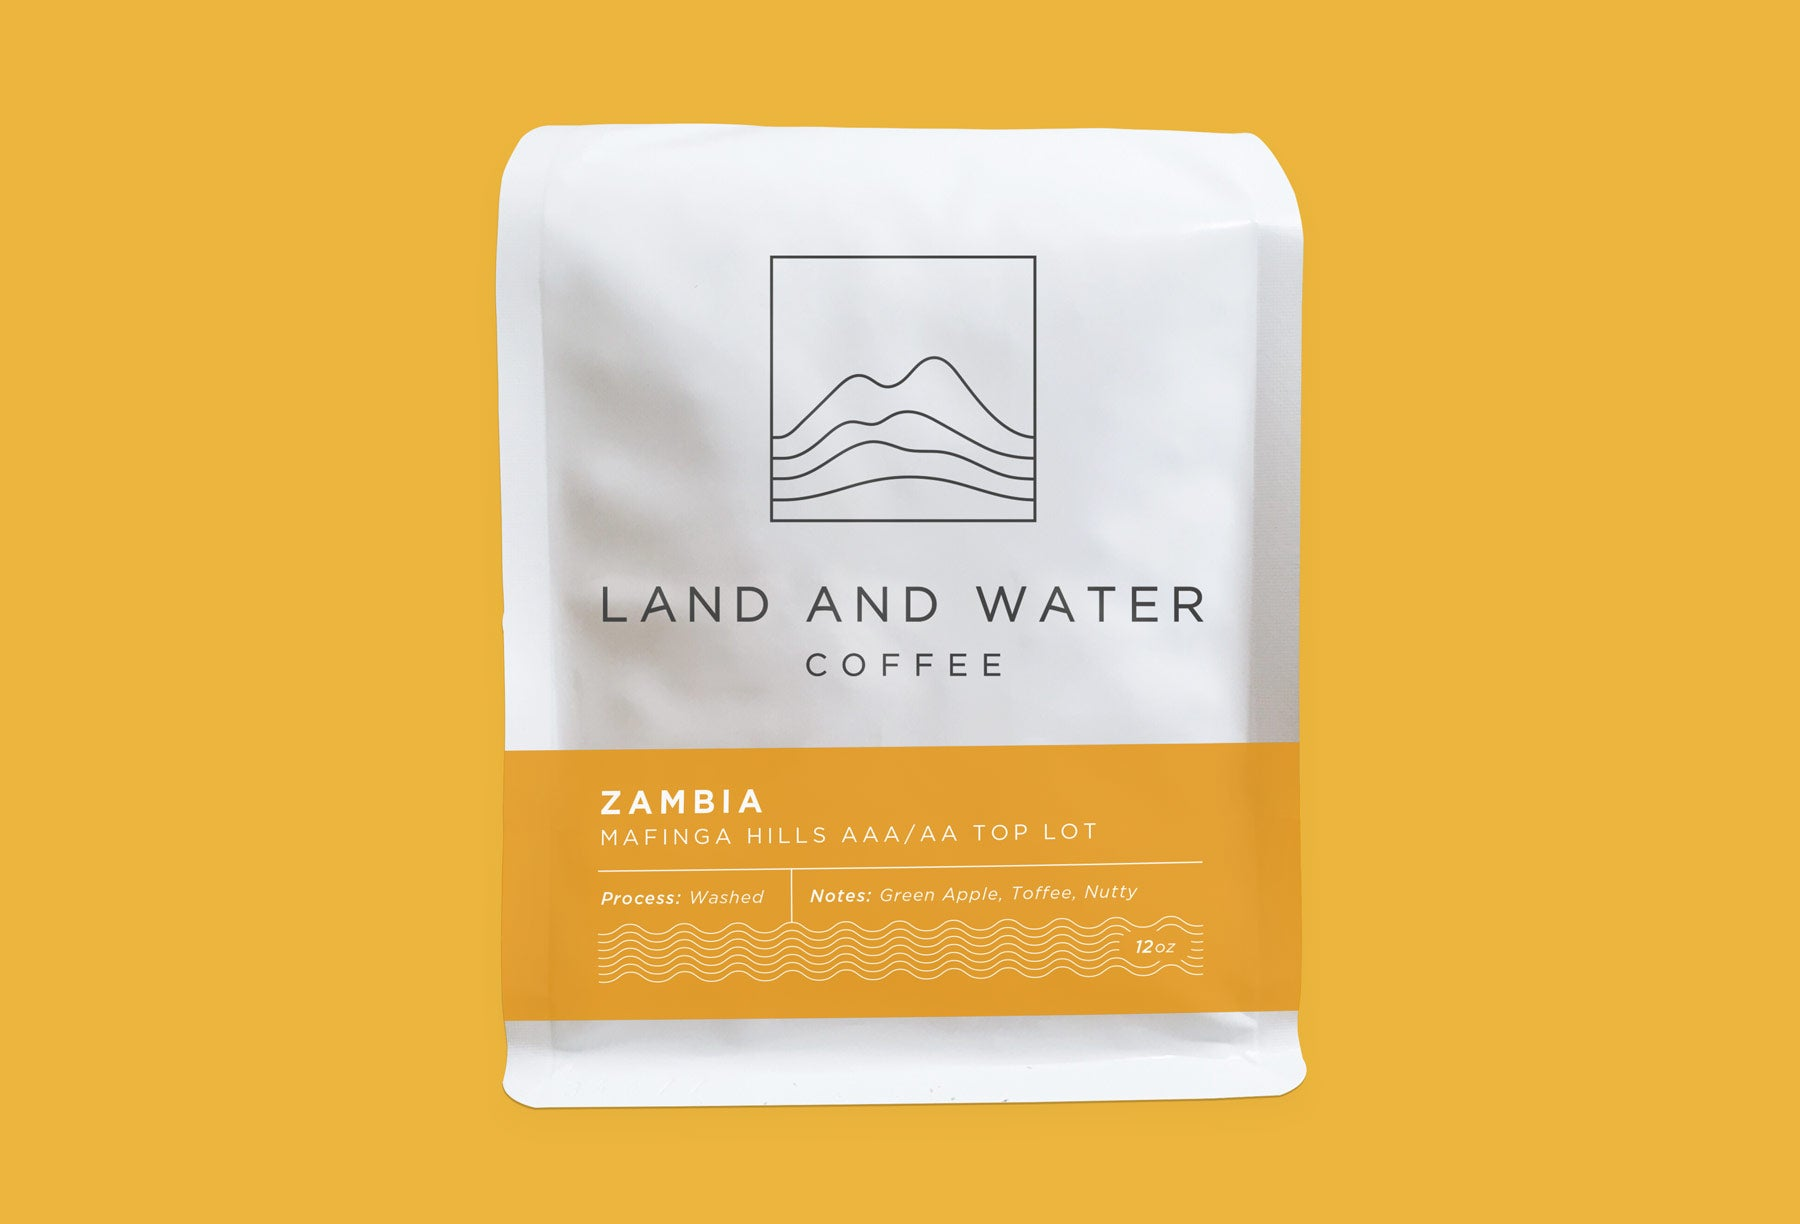 Land and Water Coffee from Mafinga Hills AAA/AA Top Lot, white bag with yellow label and yellow background